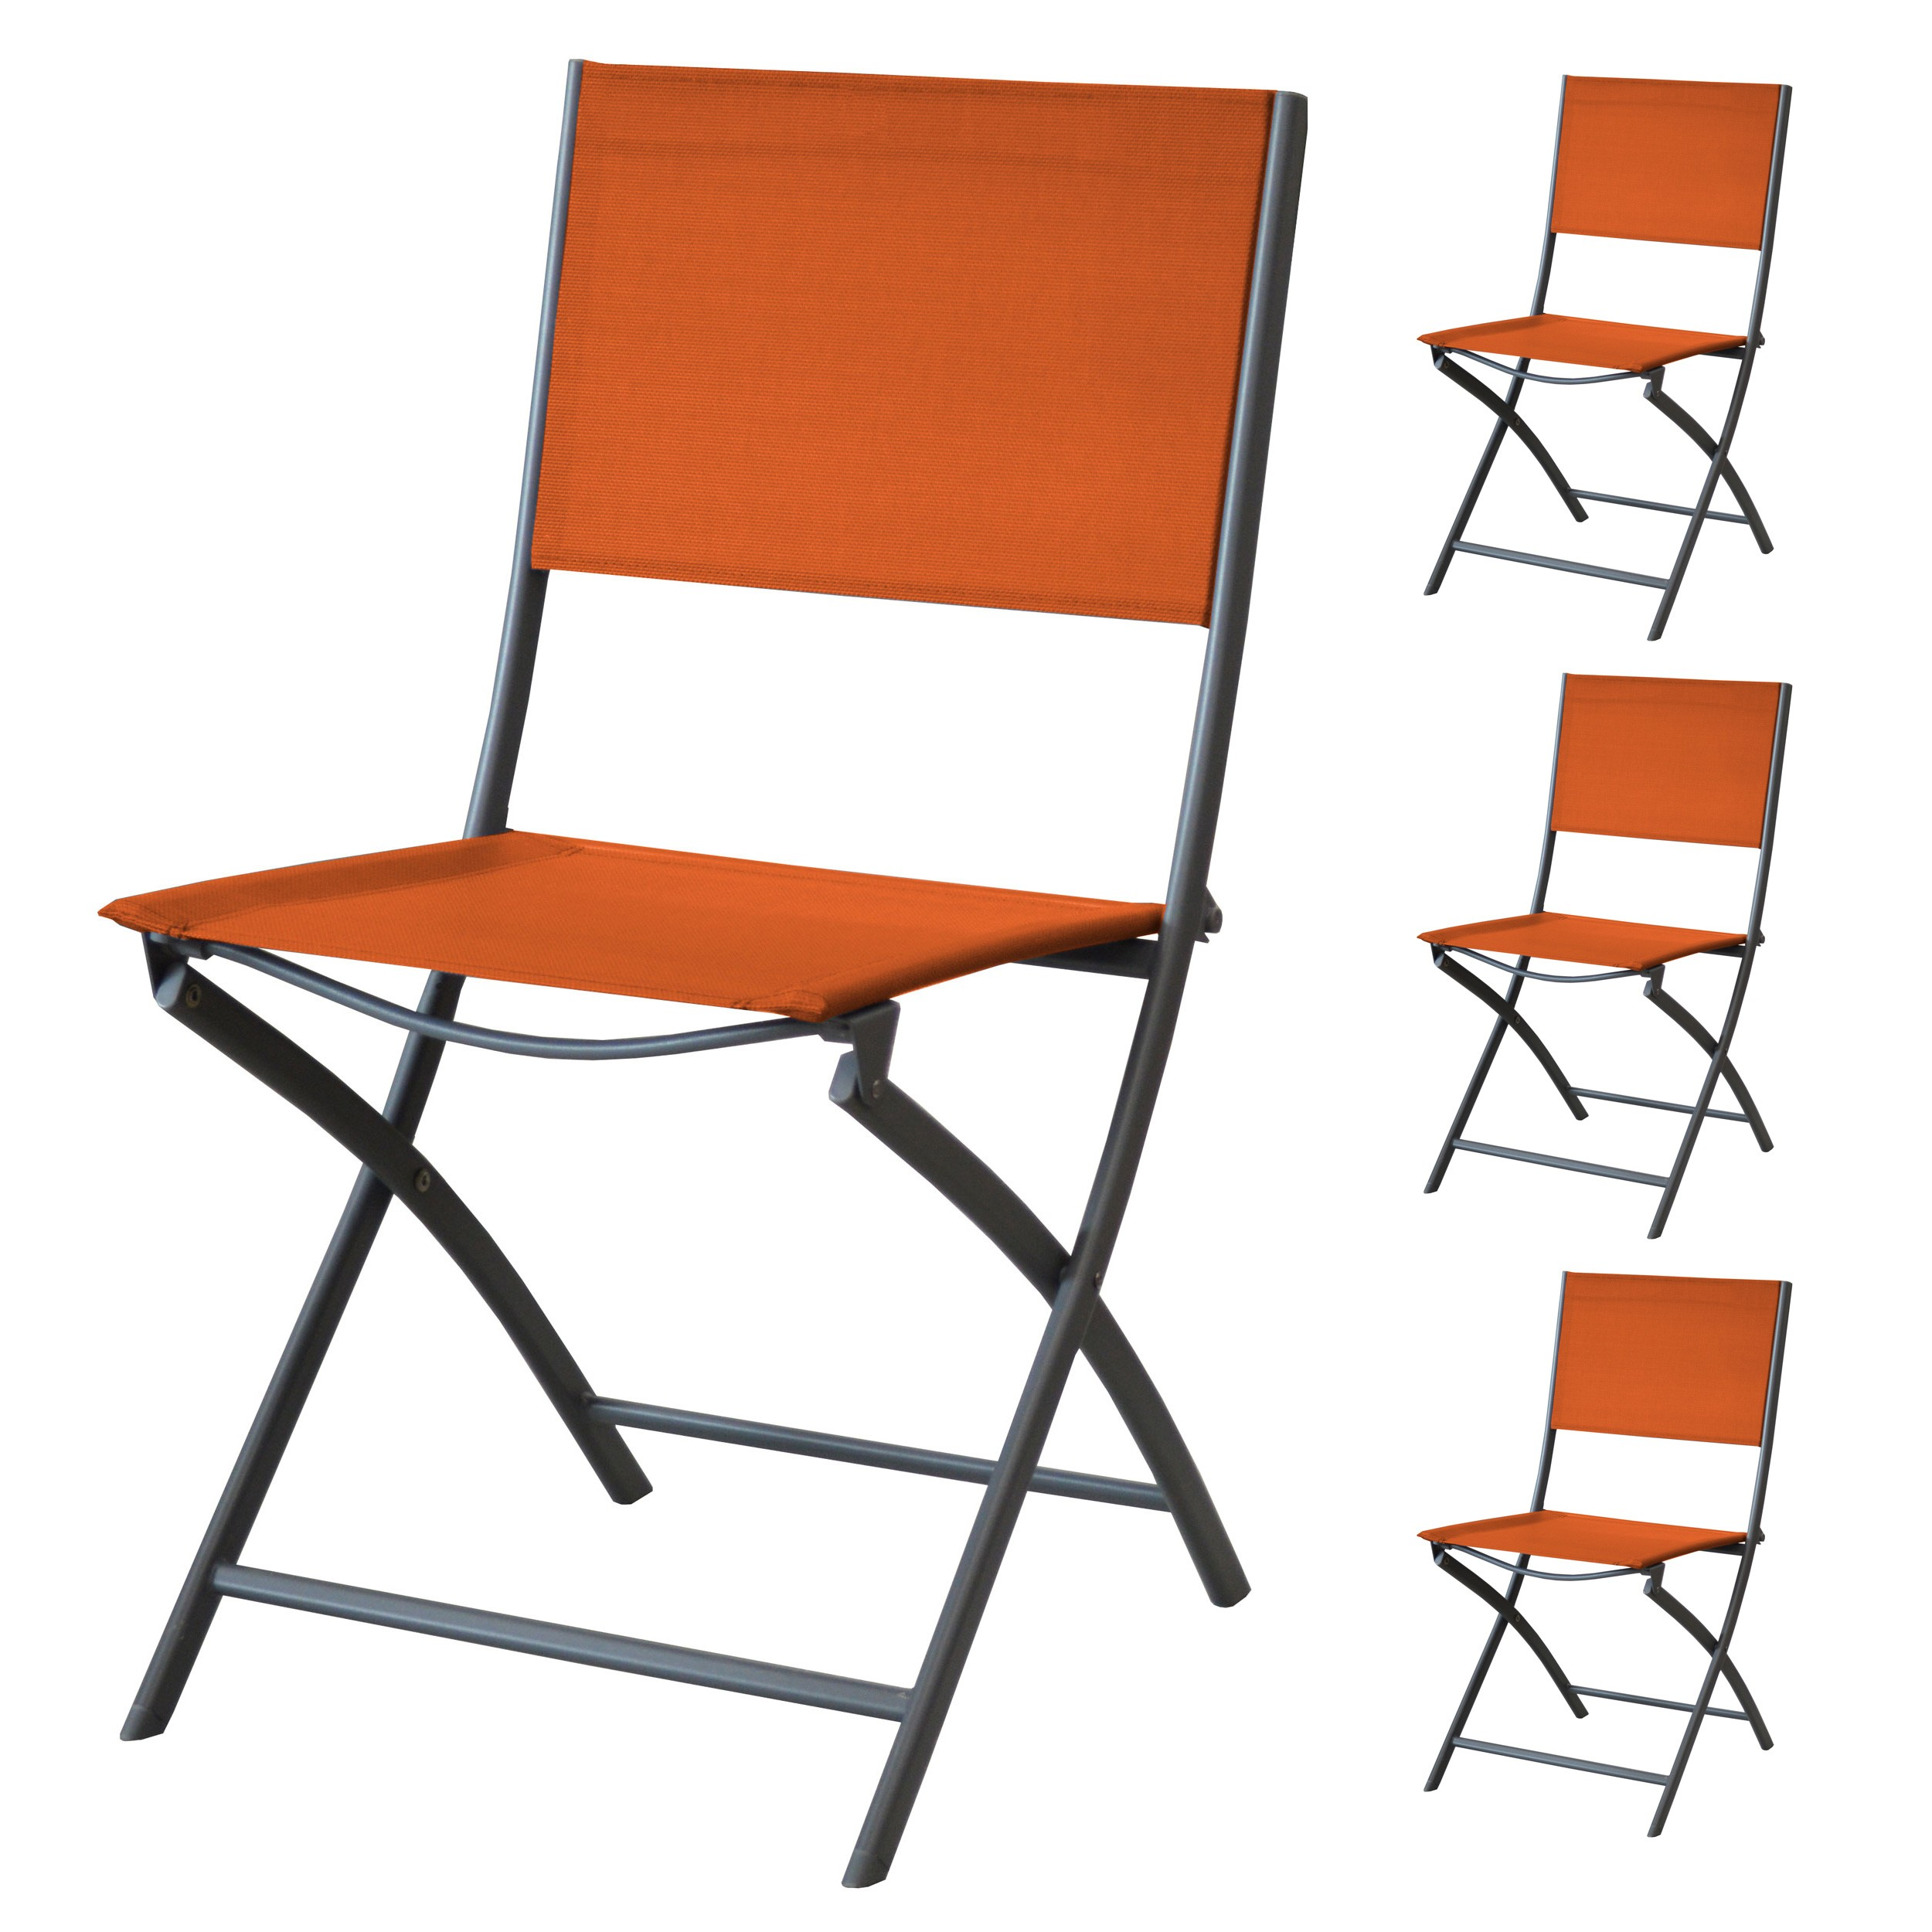 Achat Chaise Pliable Orange 4